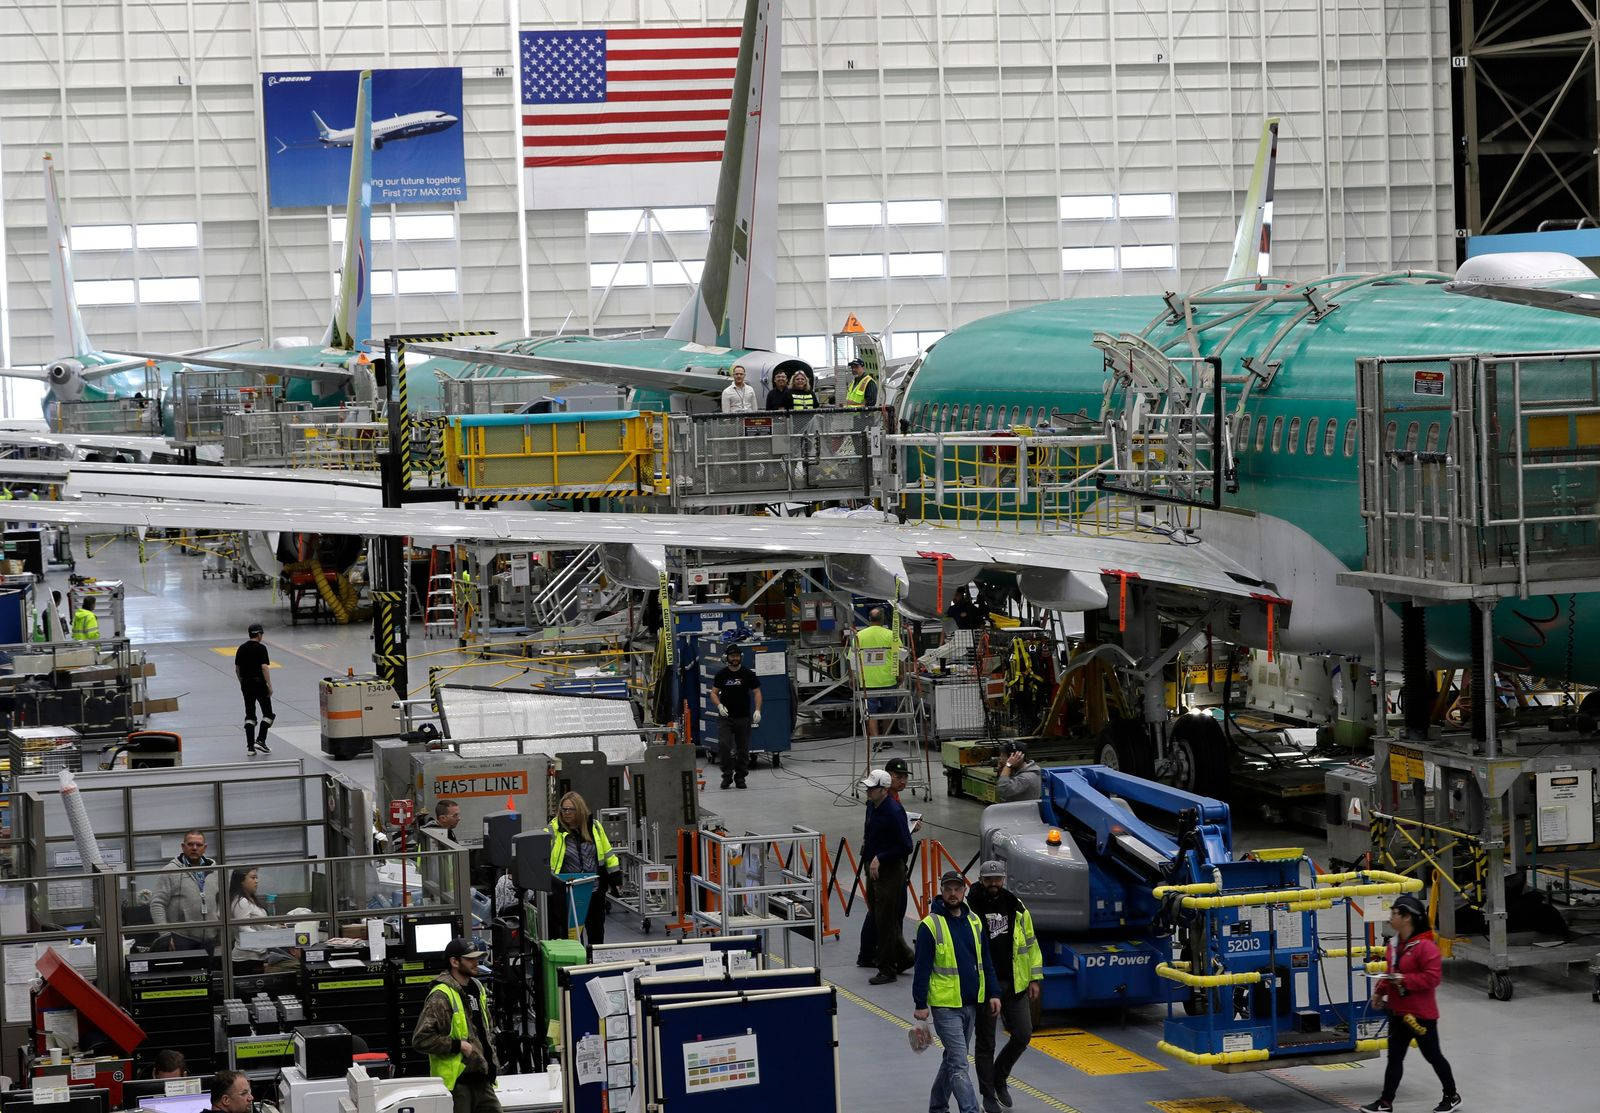 FILE - In this March 27, 2019, file photo people work on the Boeing 737 MAX 8 assembly line during a brief media tour in Boeing's 737 assembly facility in Renton, Wash. On Friday, Jan 3, 2020, the Institute for Supply Management, an association of purchasing managers, reports on activity by U.S. manufacturers in December.  (AP Photo/Ted S. Warren, File)